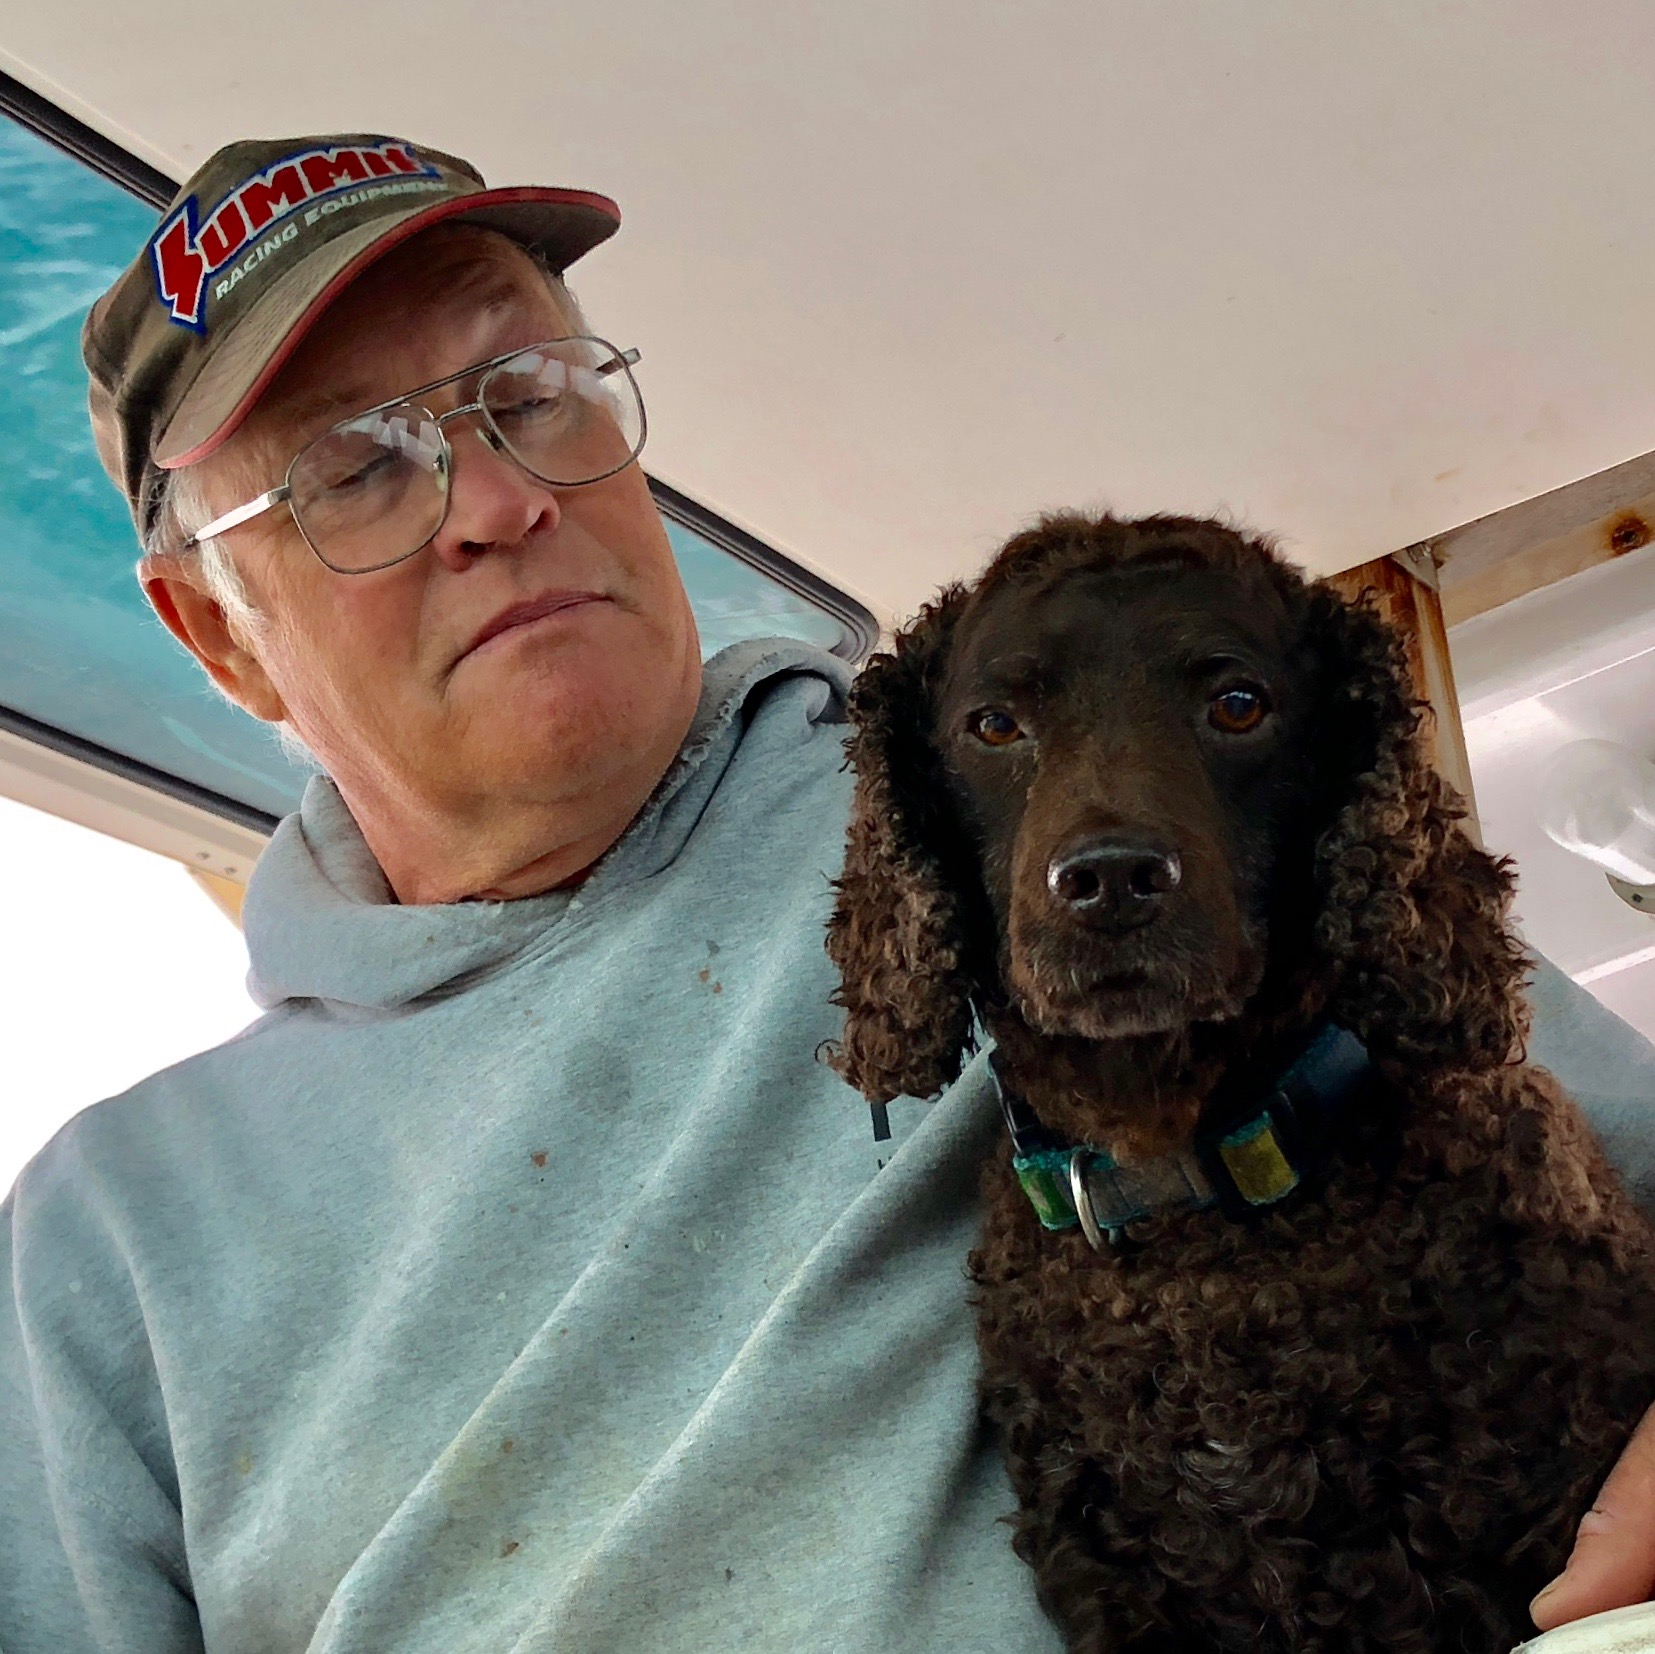 The Captain, Doug, and his seasoned first mate, Sassy. She's an awesome companion to have aboard and knows the ropes ...